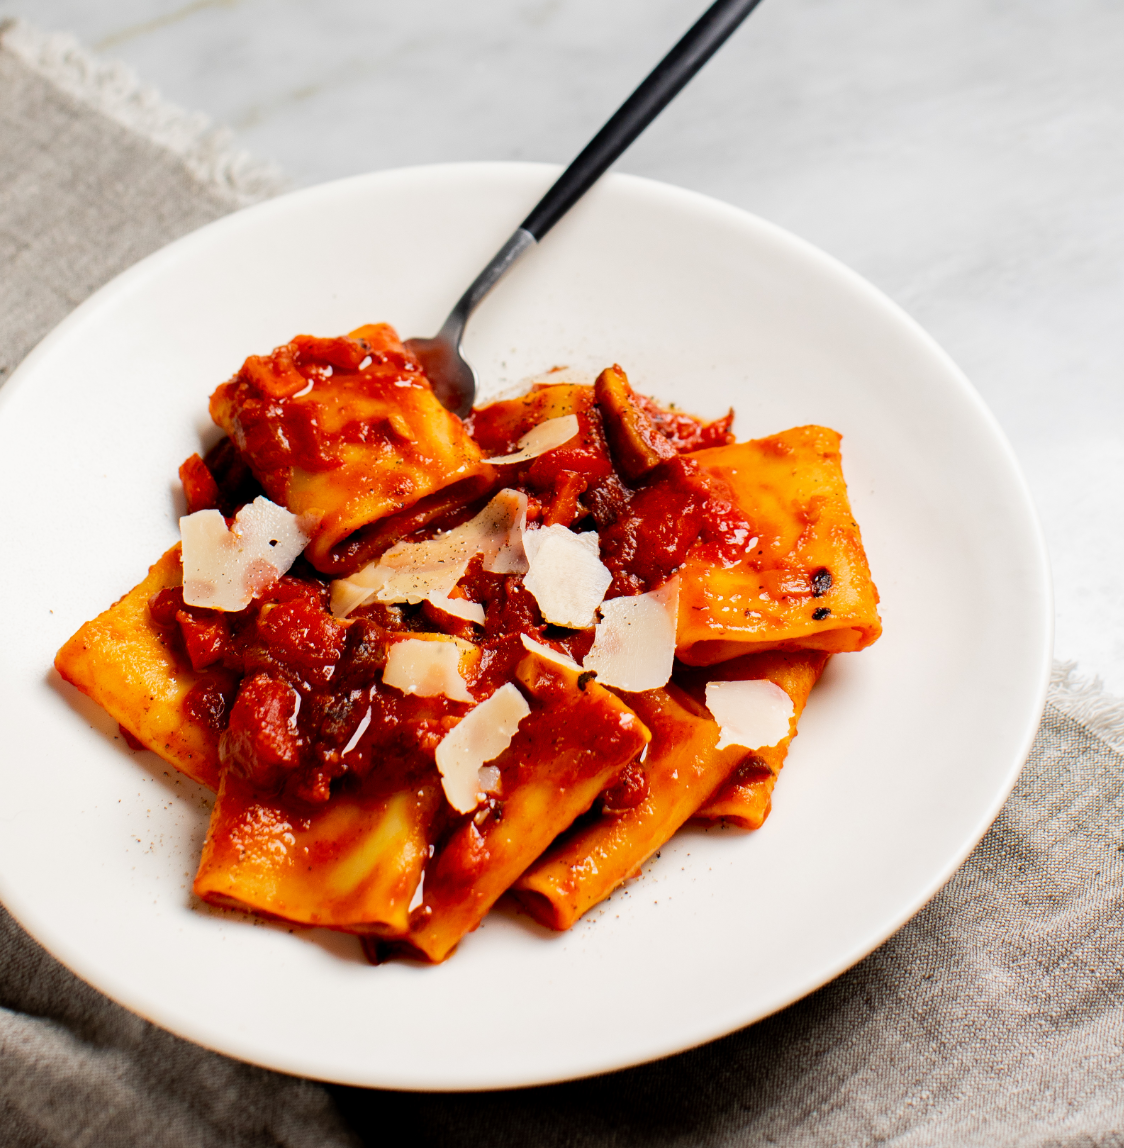 Paccheri Pasta with Bacon in a Smoky Tomato Sauce